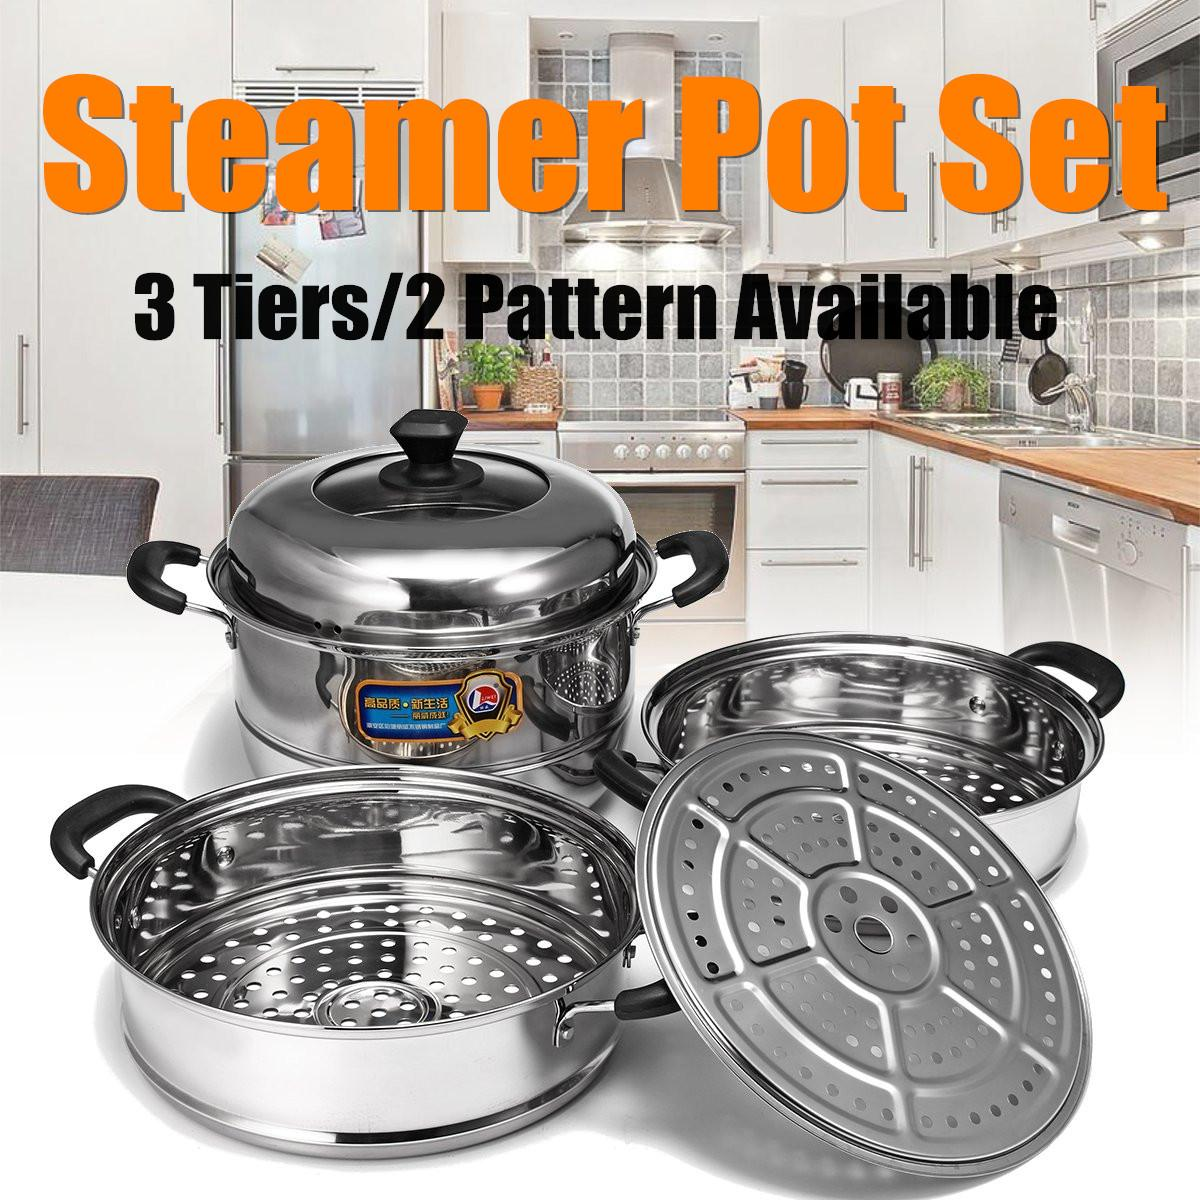 3 Tier Multi-function Steamer Stainless Steel Steam Pot Cookware Home Kitchen Cooking Steamers Boiler Tools Induction Cooker